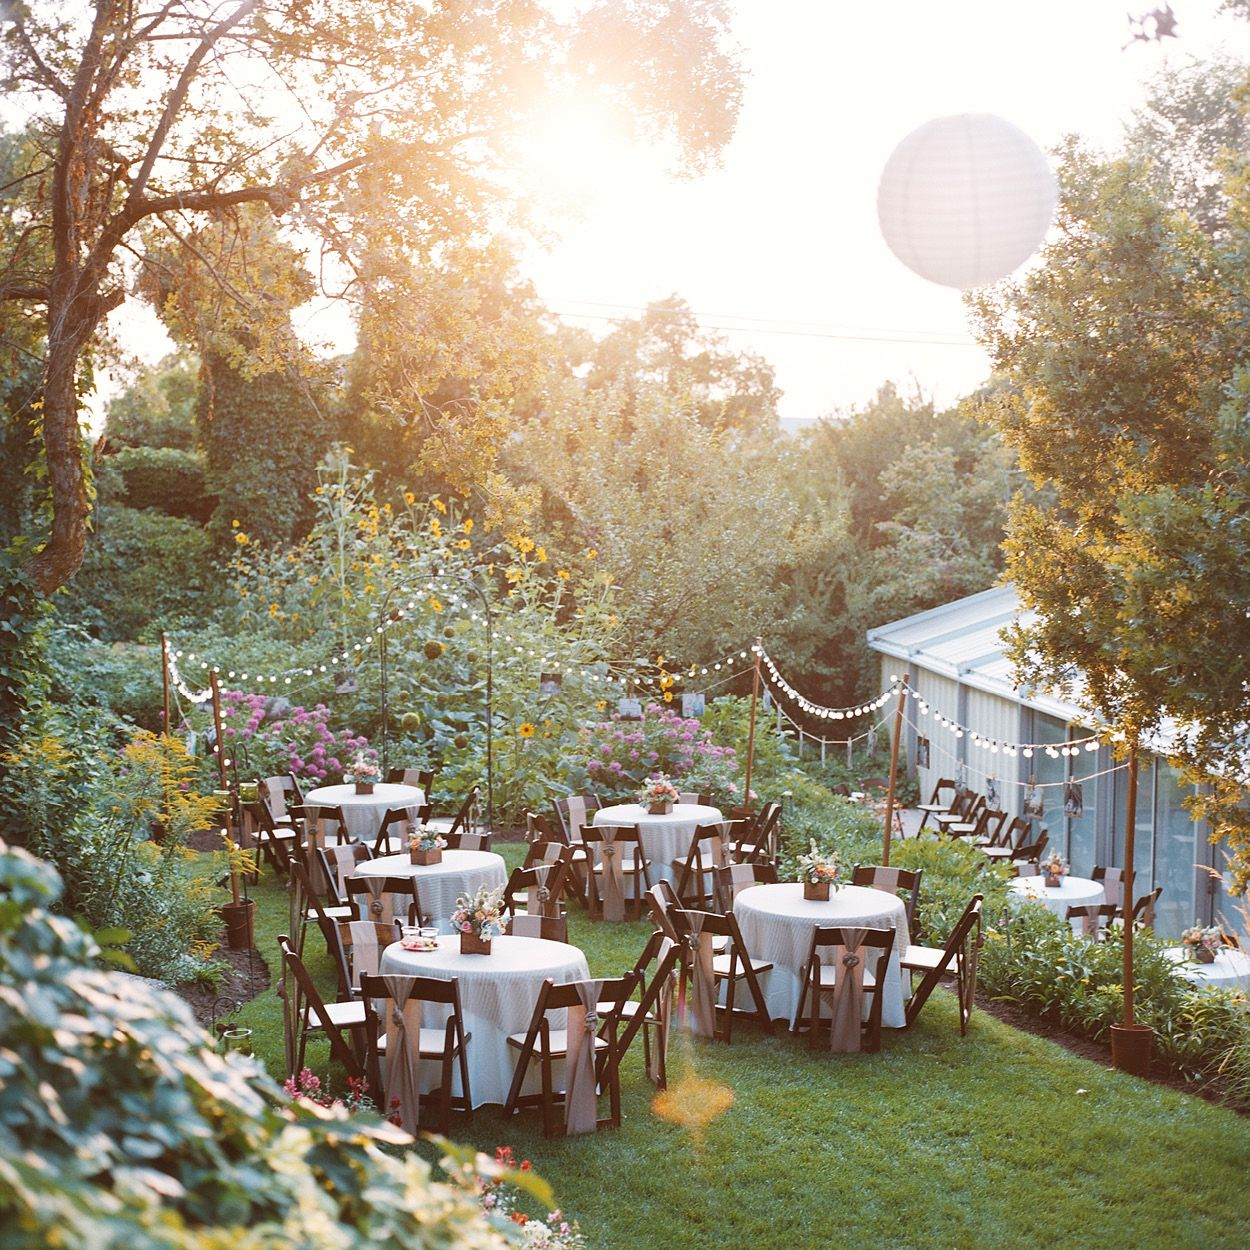 Small Garden Wedding Ideas: Garden Succulent, Love The Fabric On The Chairs And The